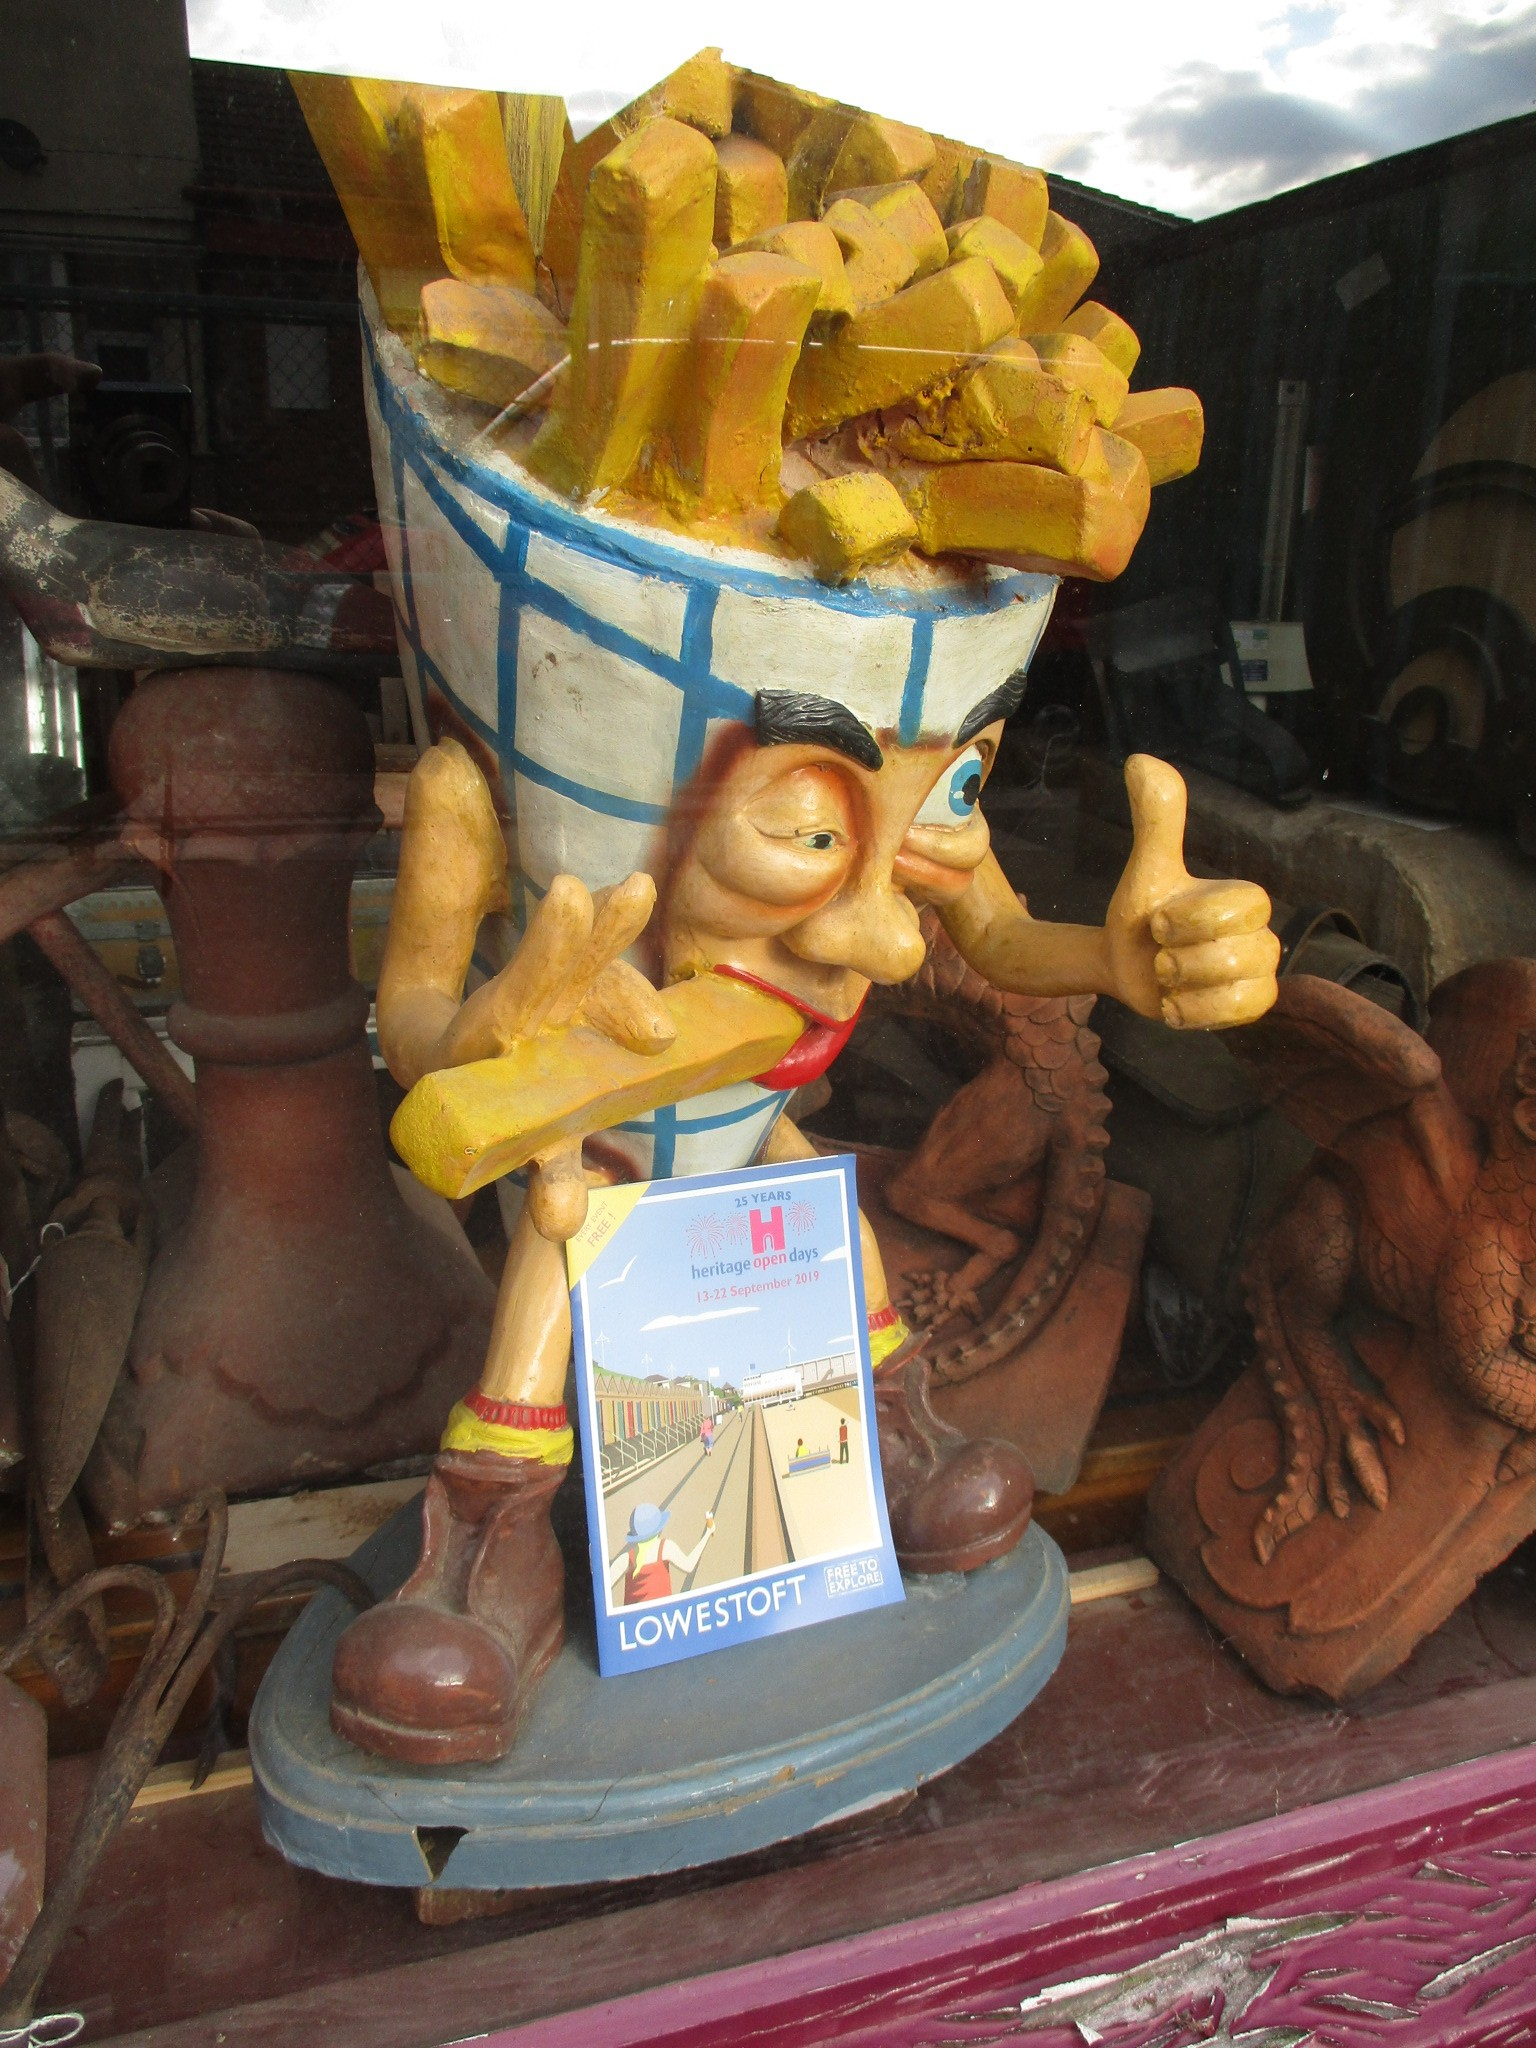 Mr.Chips advertising statue